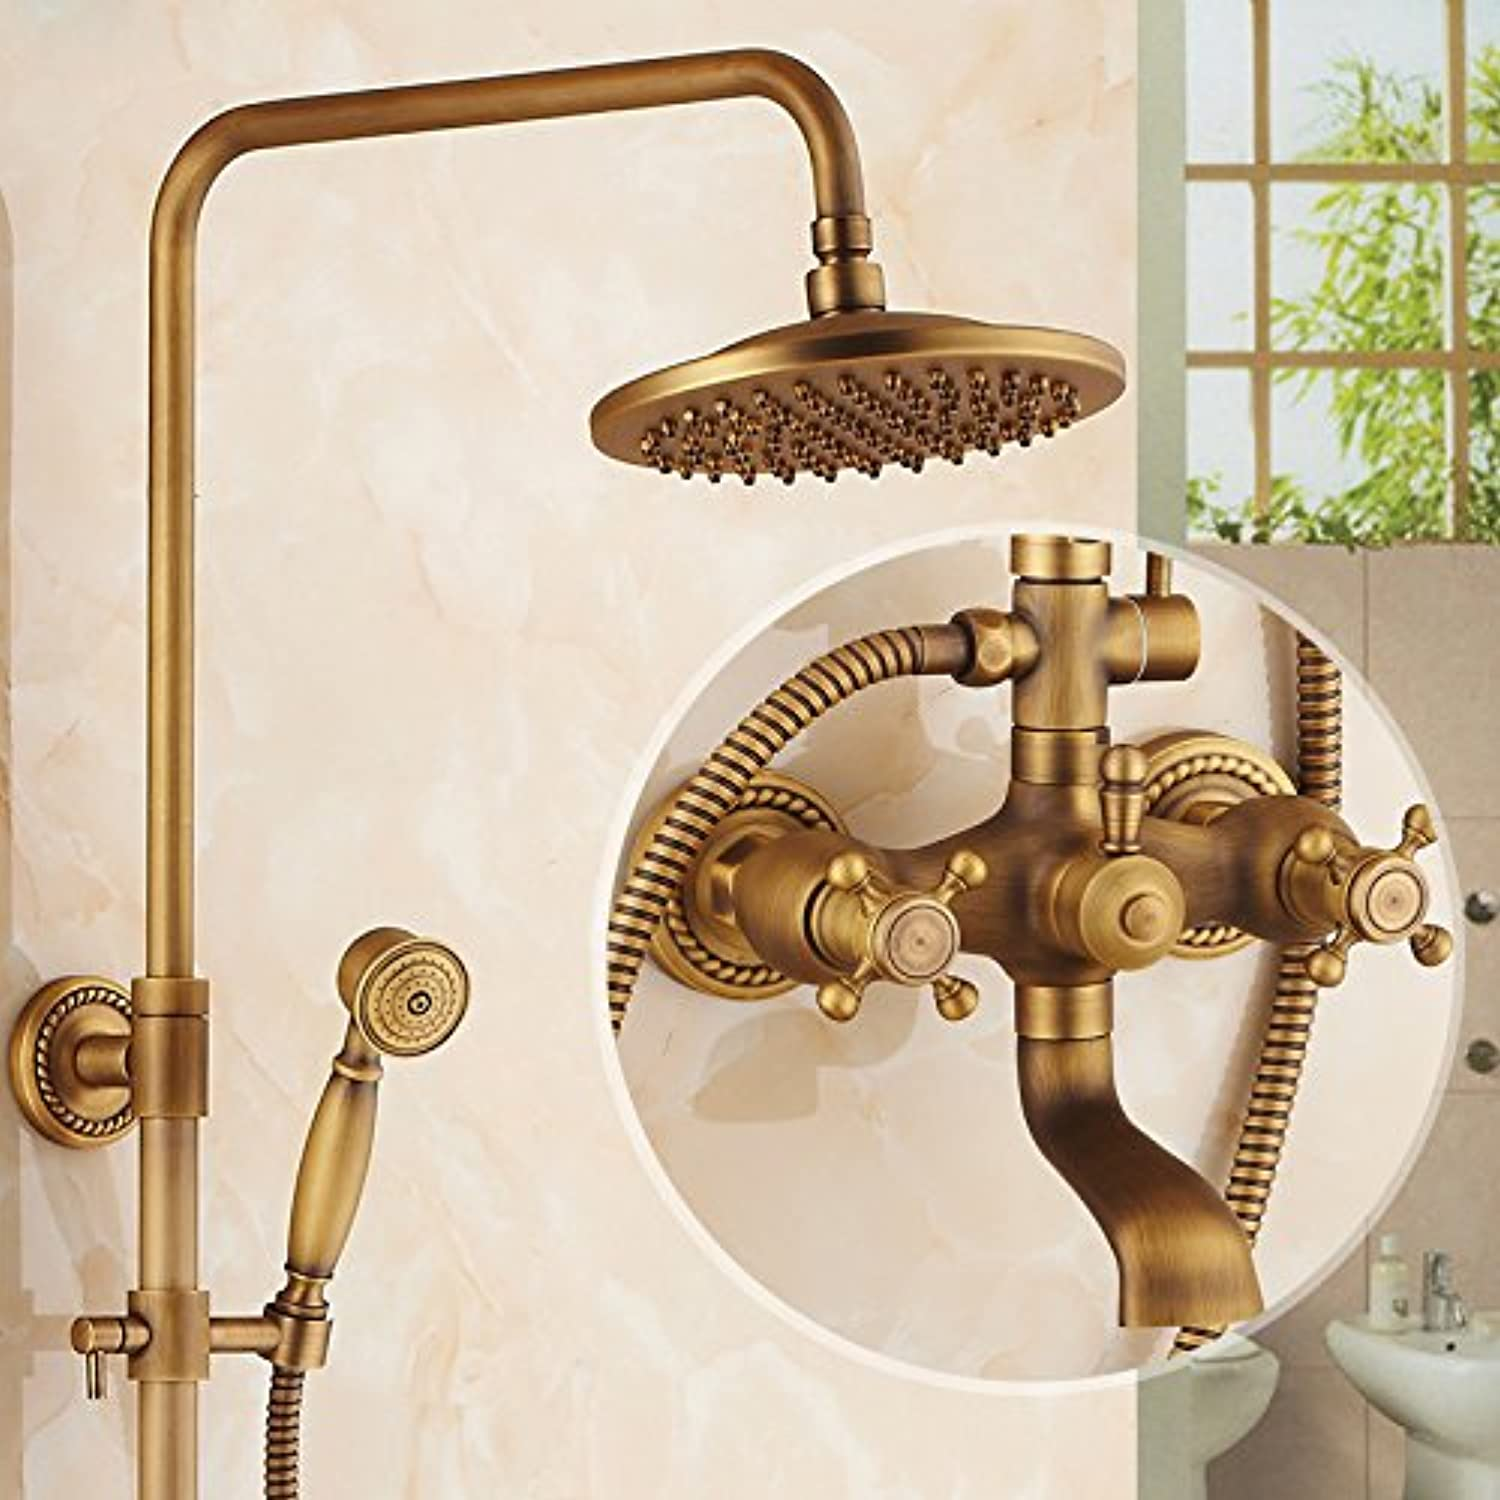 Hlluya Professional Sink Mixer Tap Kitchen Faucet Antique faucets full copper shower set bathroom shower with hot and cold running water taps, water faucet,F